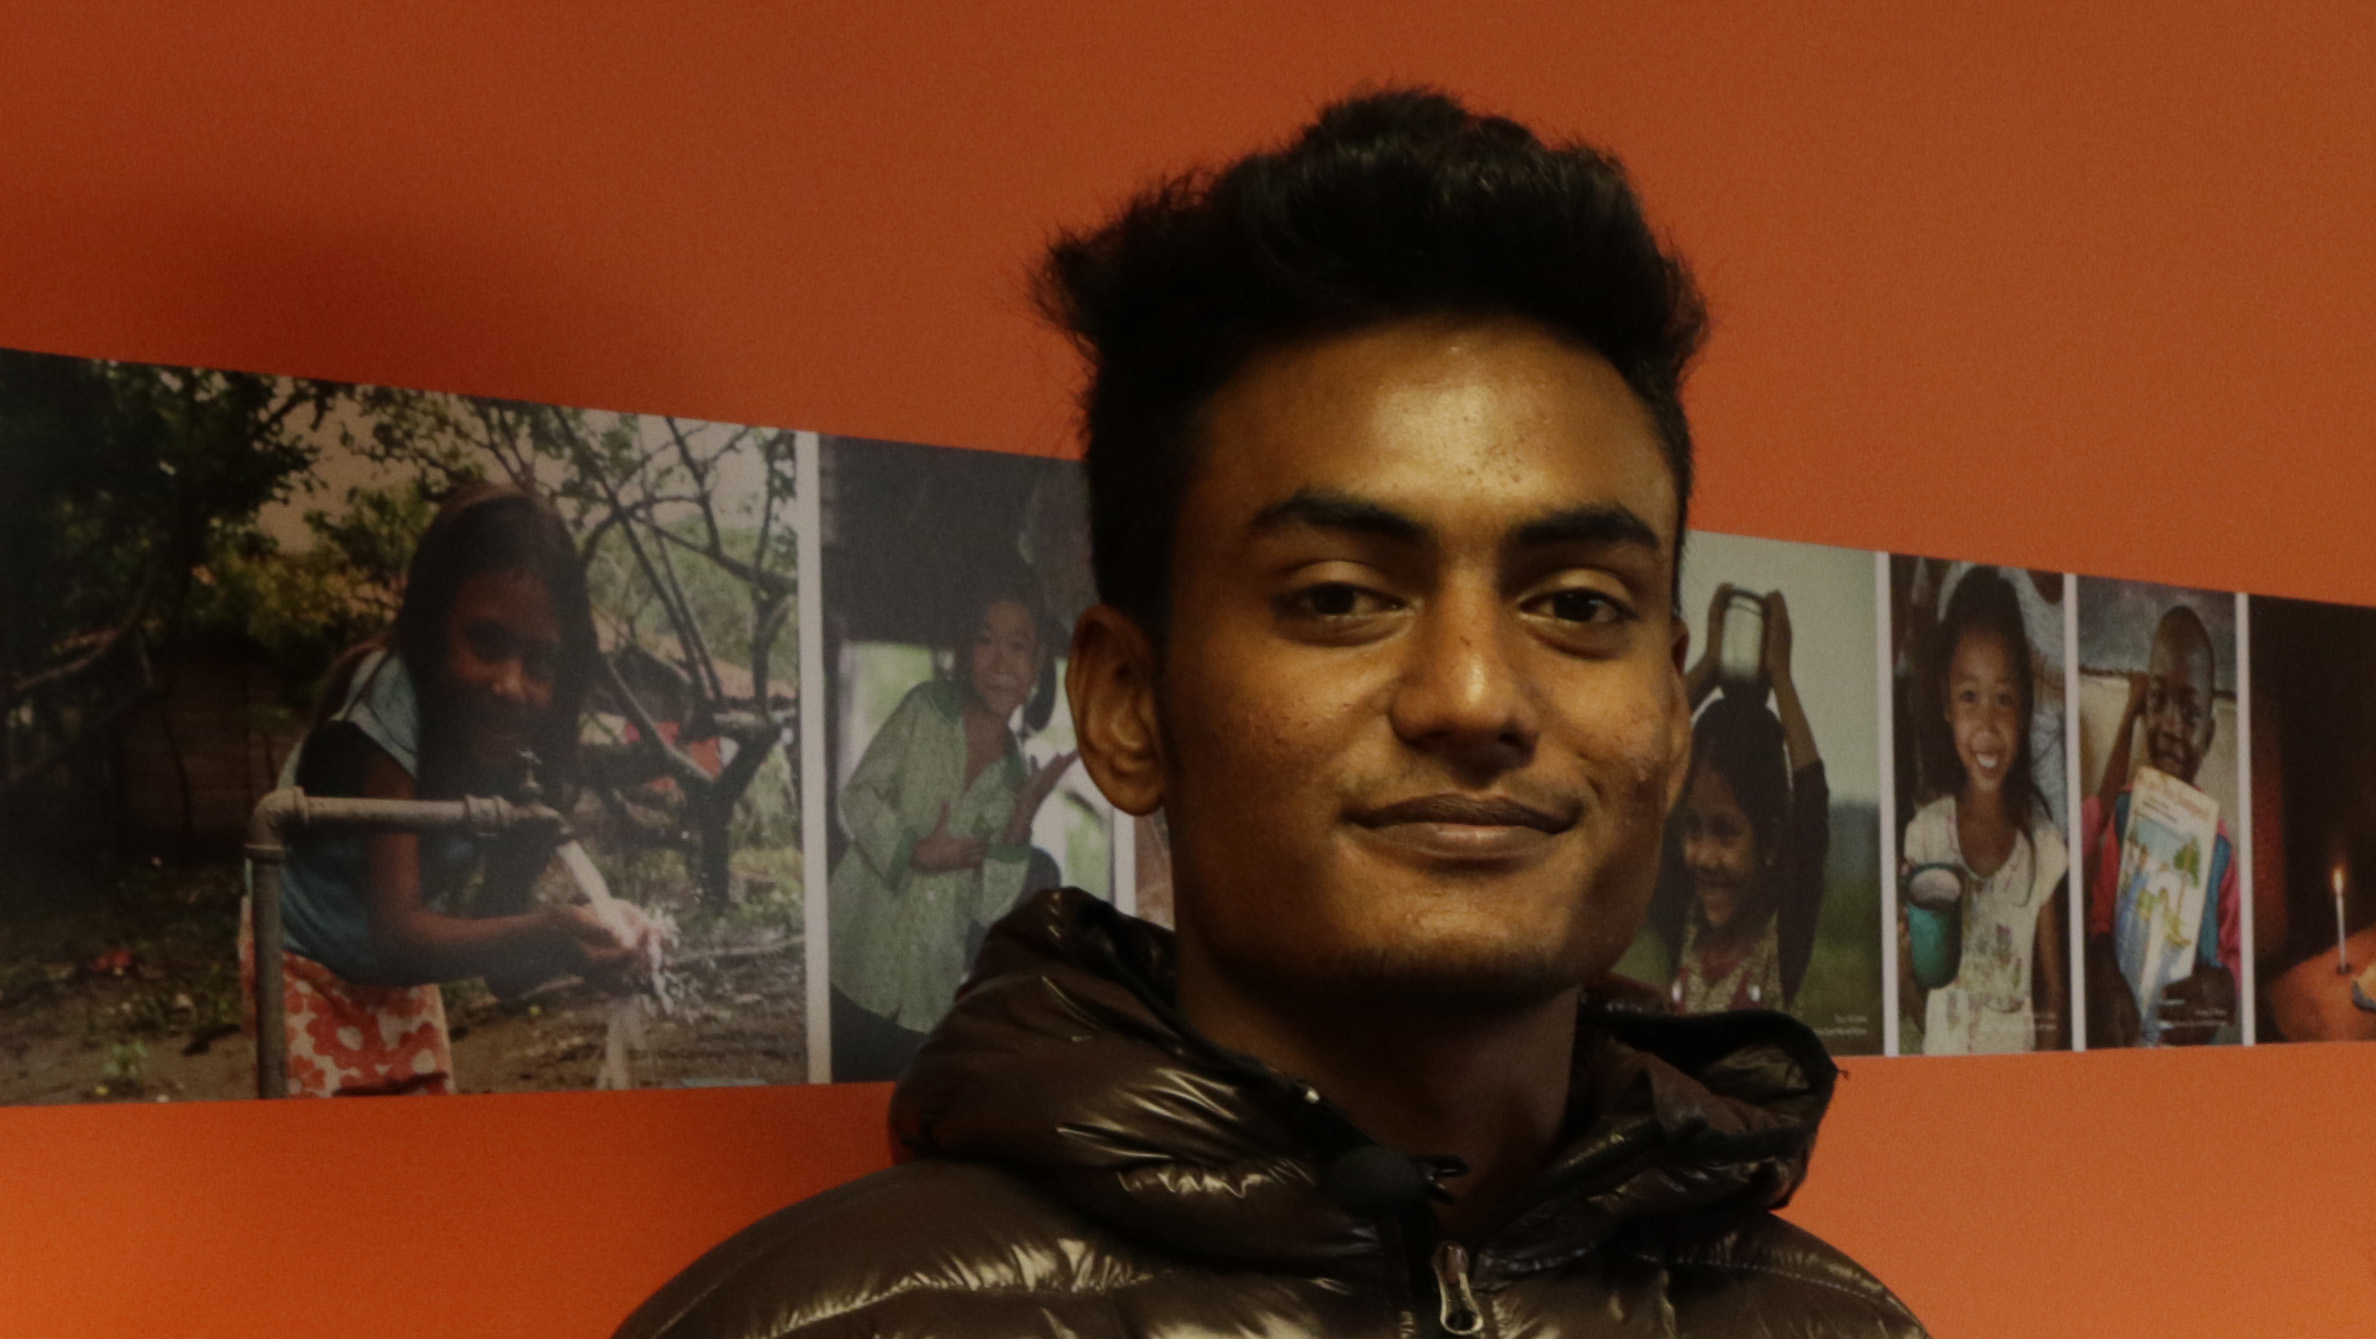 Al-Amin, 19, is a World Vision Young Leader from Bangladesh